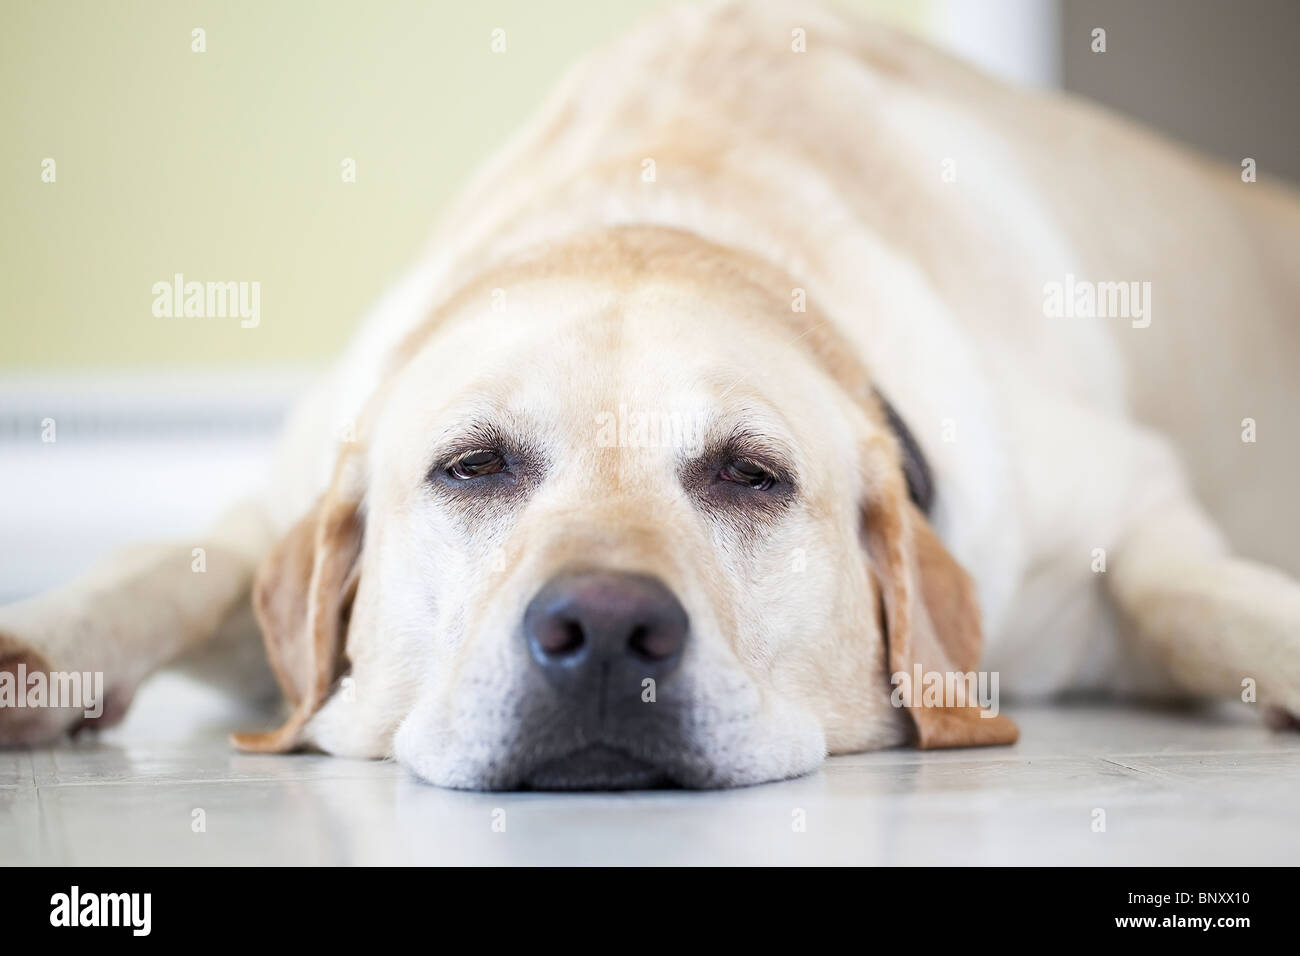 Close up view of a sleepy Yellow Labrador Retriever dog lying on floor.  Winnipeg, Manitoba, Canada. - Stock Image